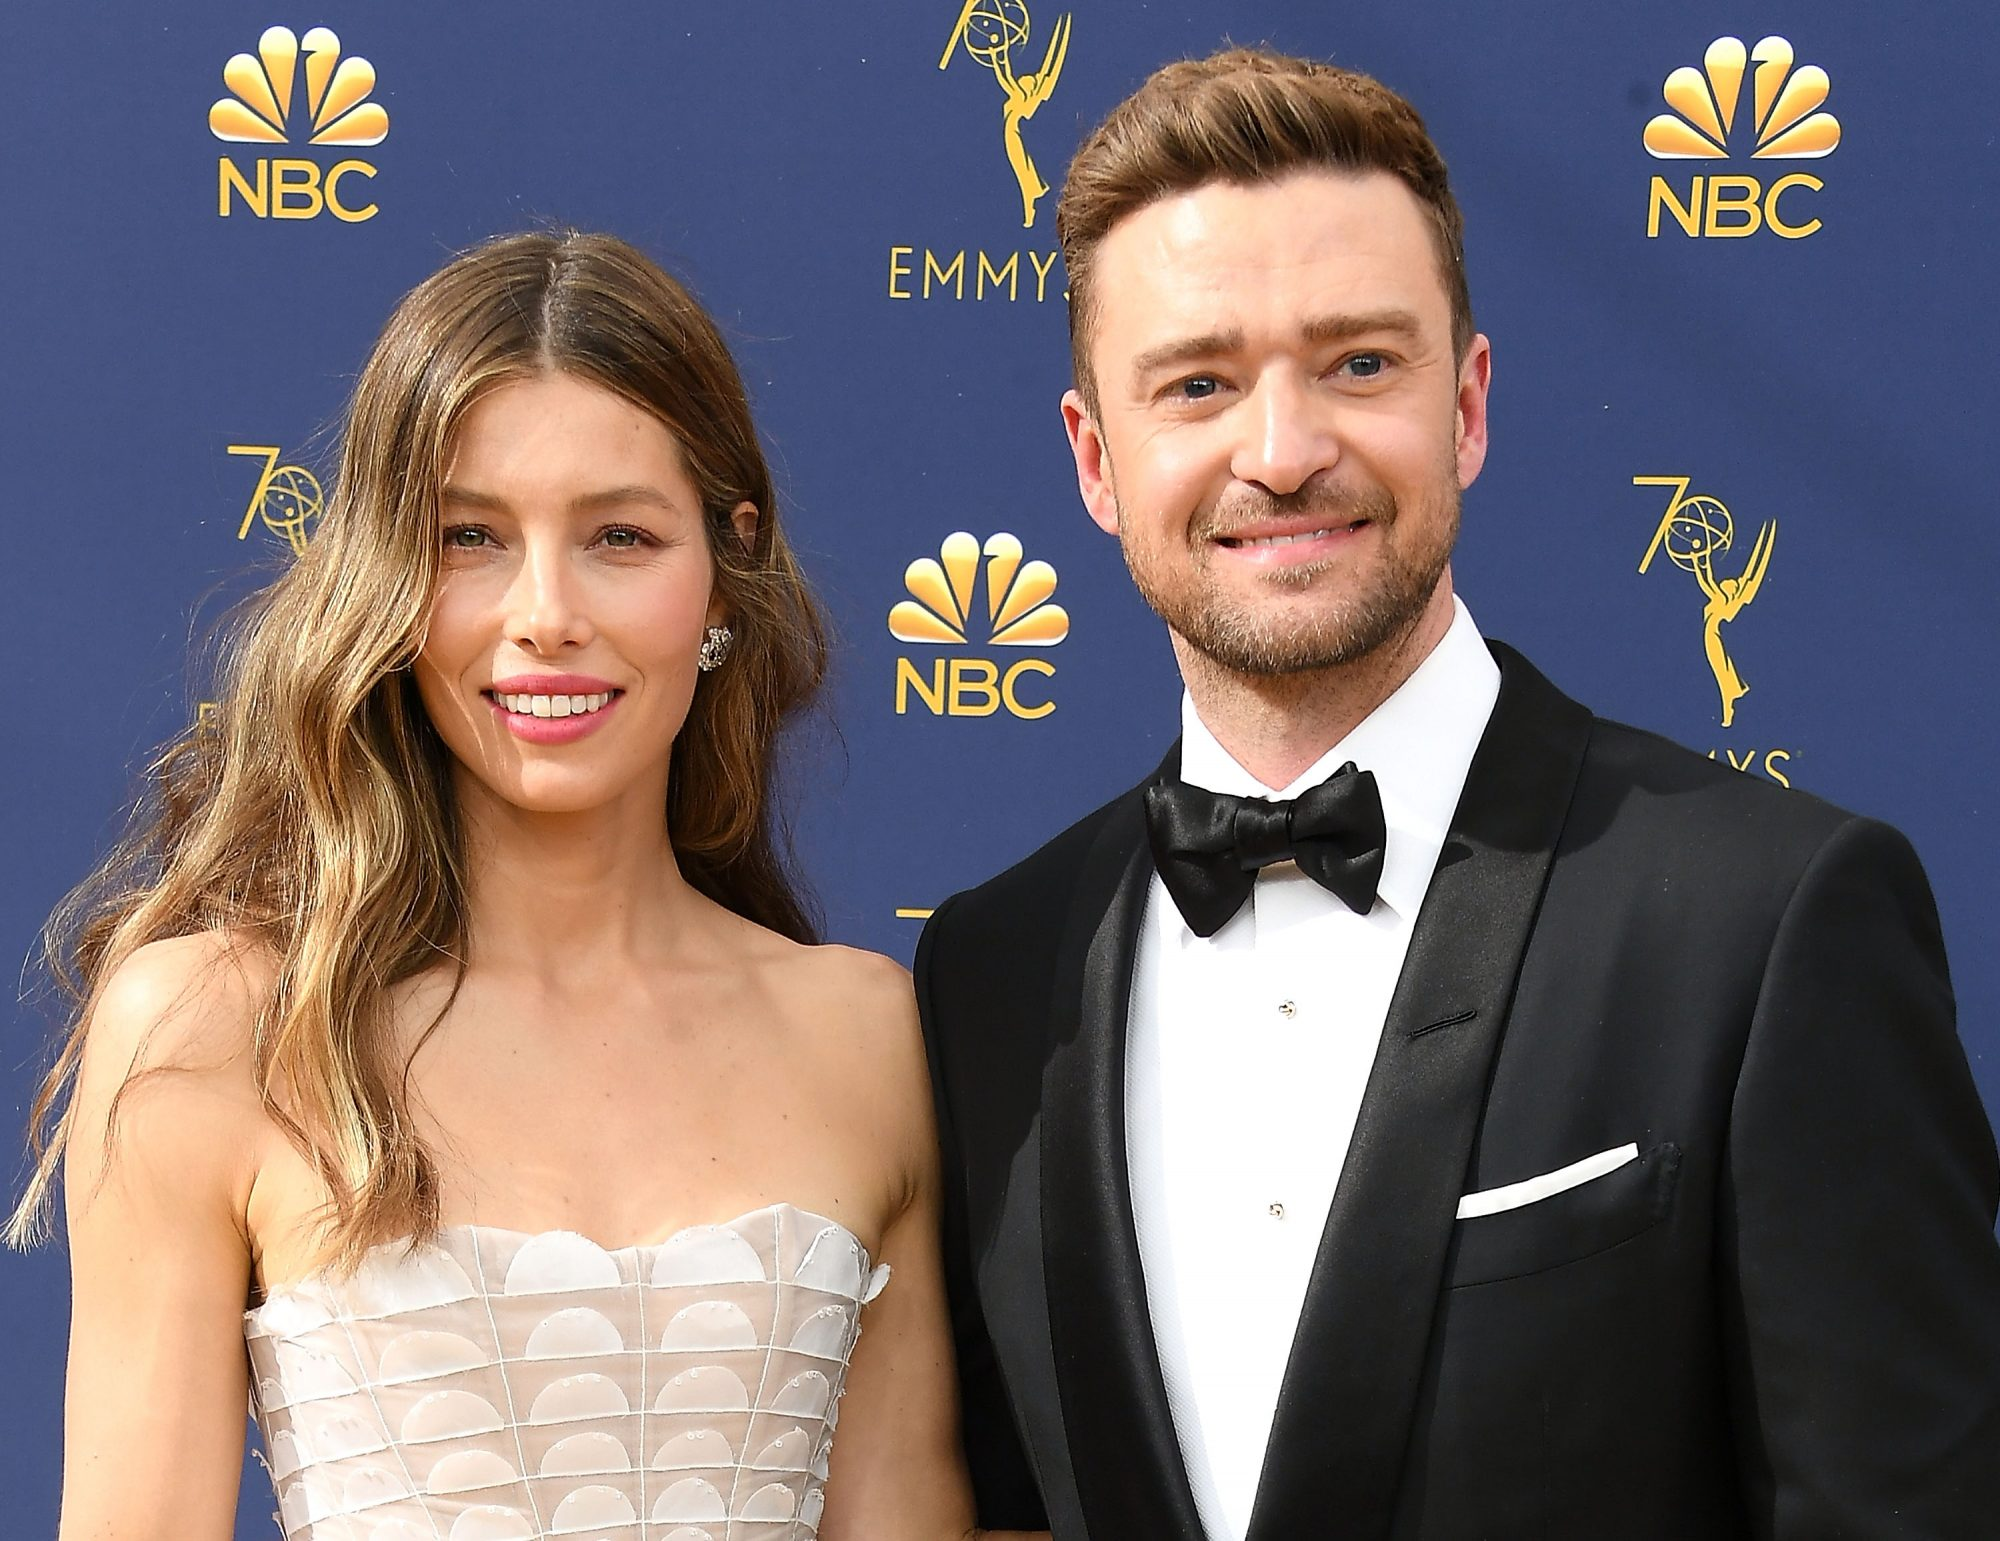 Justin Timberlake Shared the First Photo of His and Jessica Biel's Baby Son Phineas